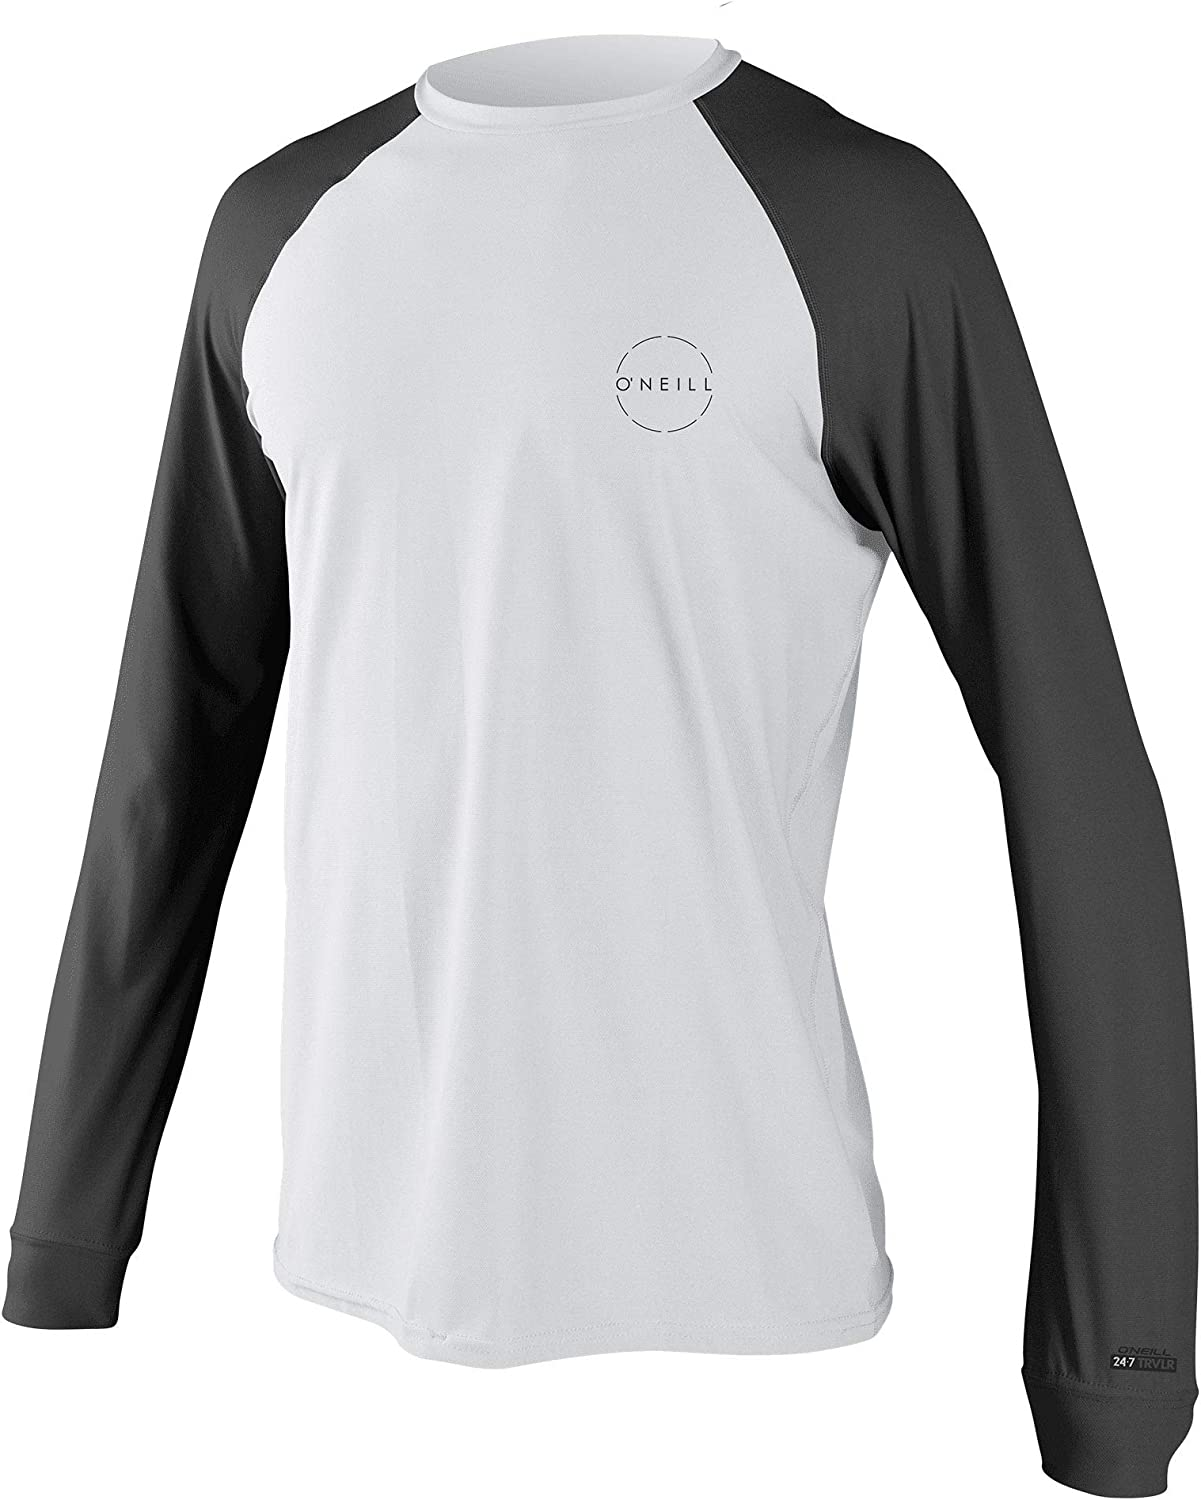 O'Neill Wetsuits Men's O'neill 24-7 Traveler UPF 30+ Long Sleeve Sun Shirt